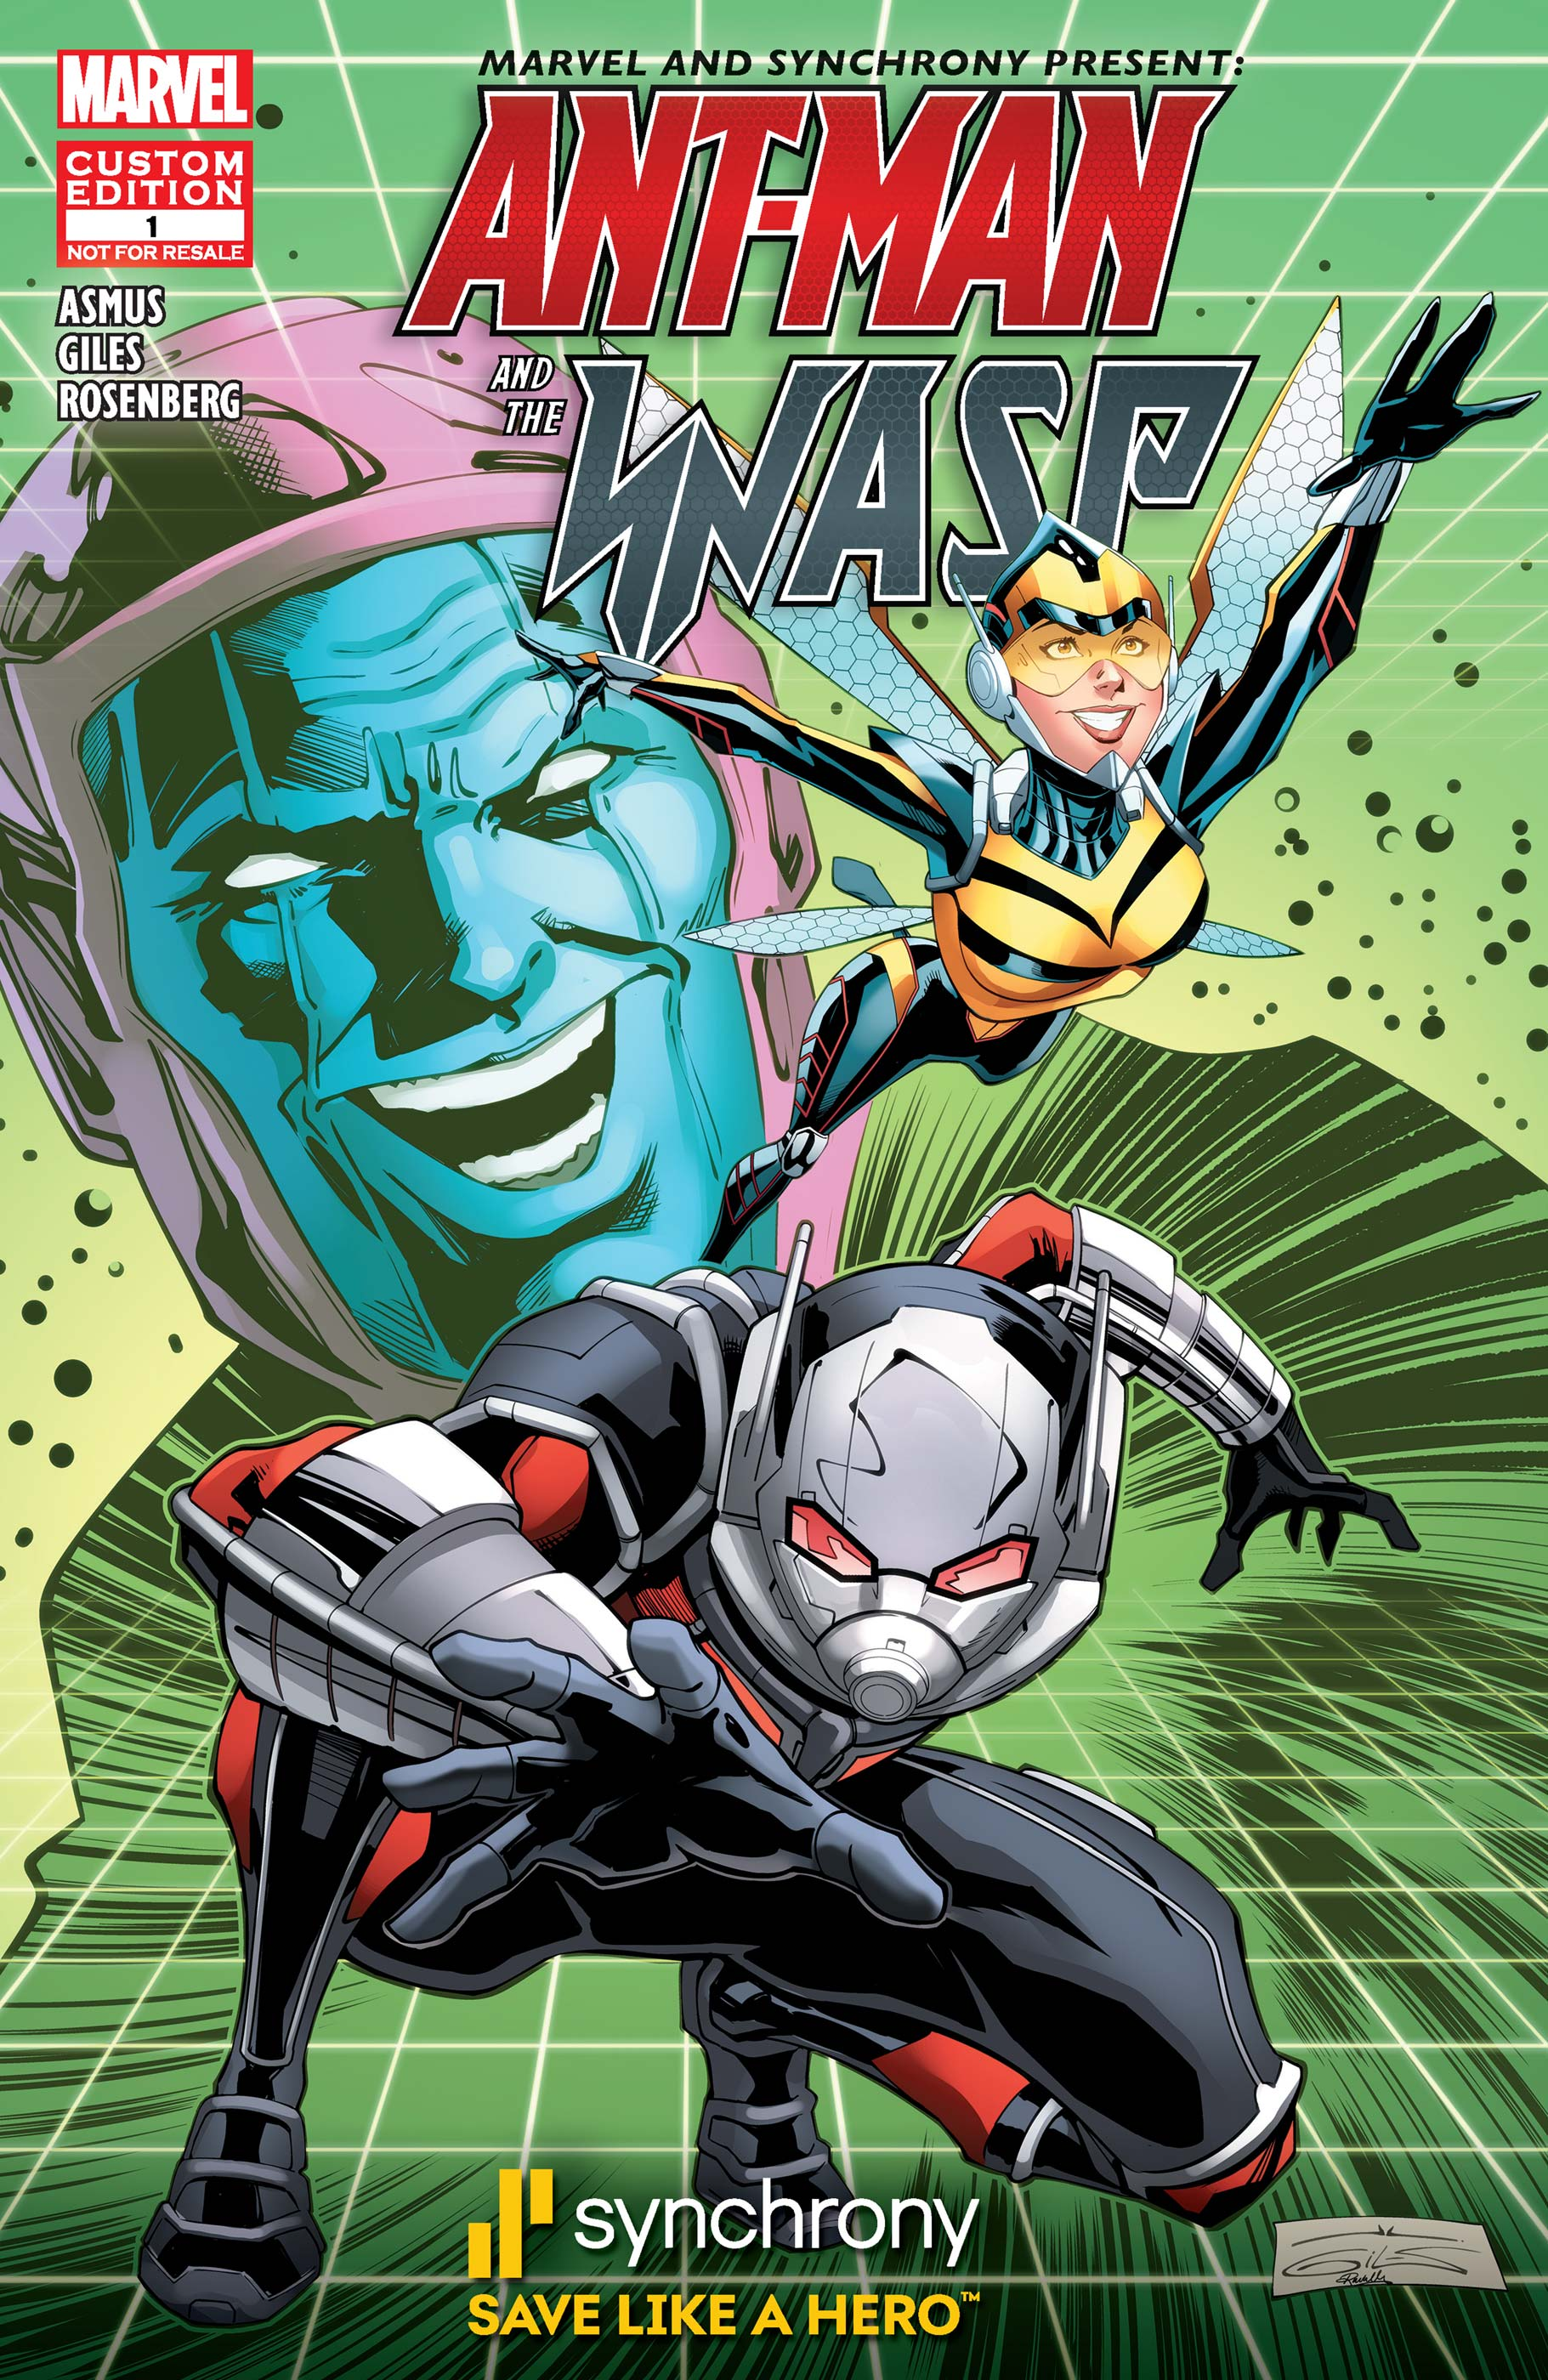 Marvel and Synchrony Present Ant-Man and the Wasp: Saving Time (2018)